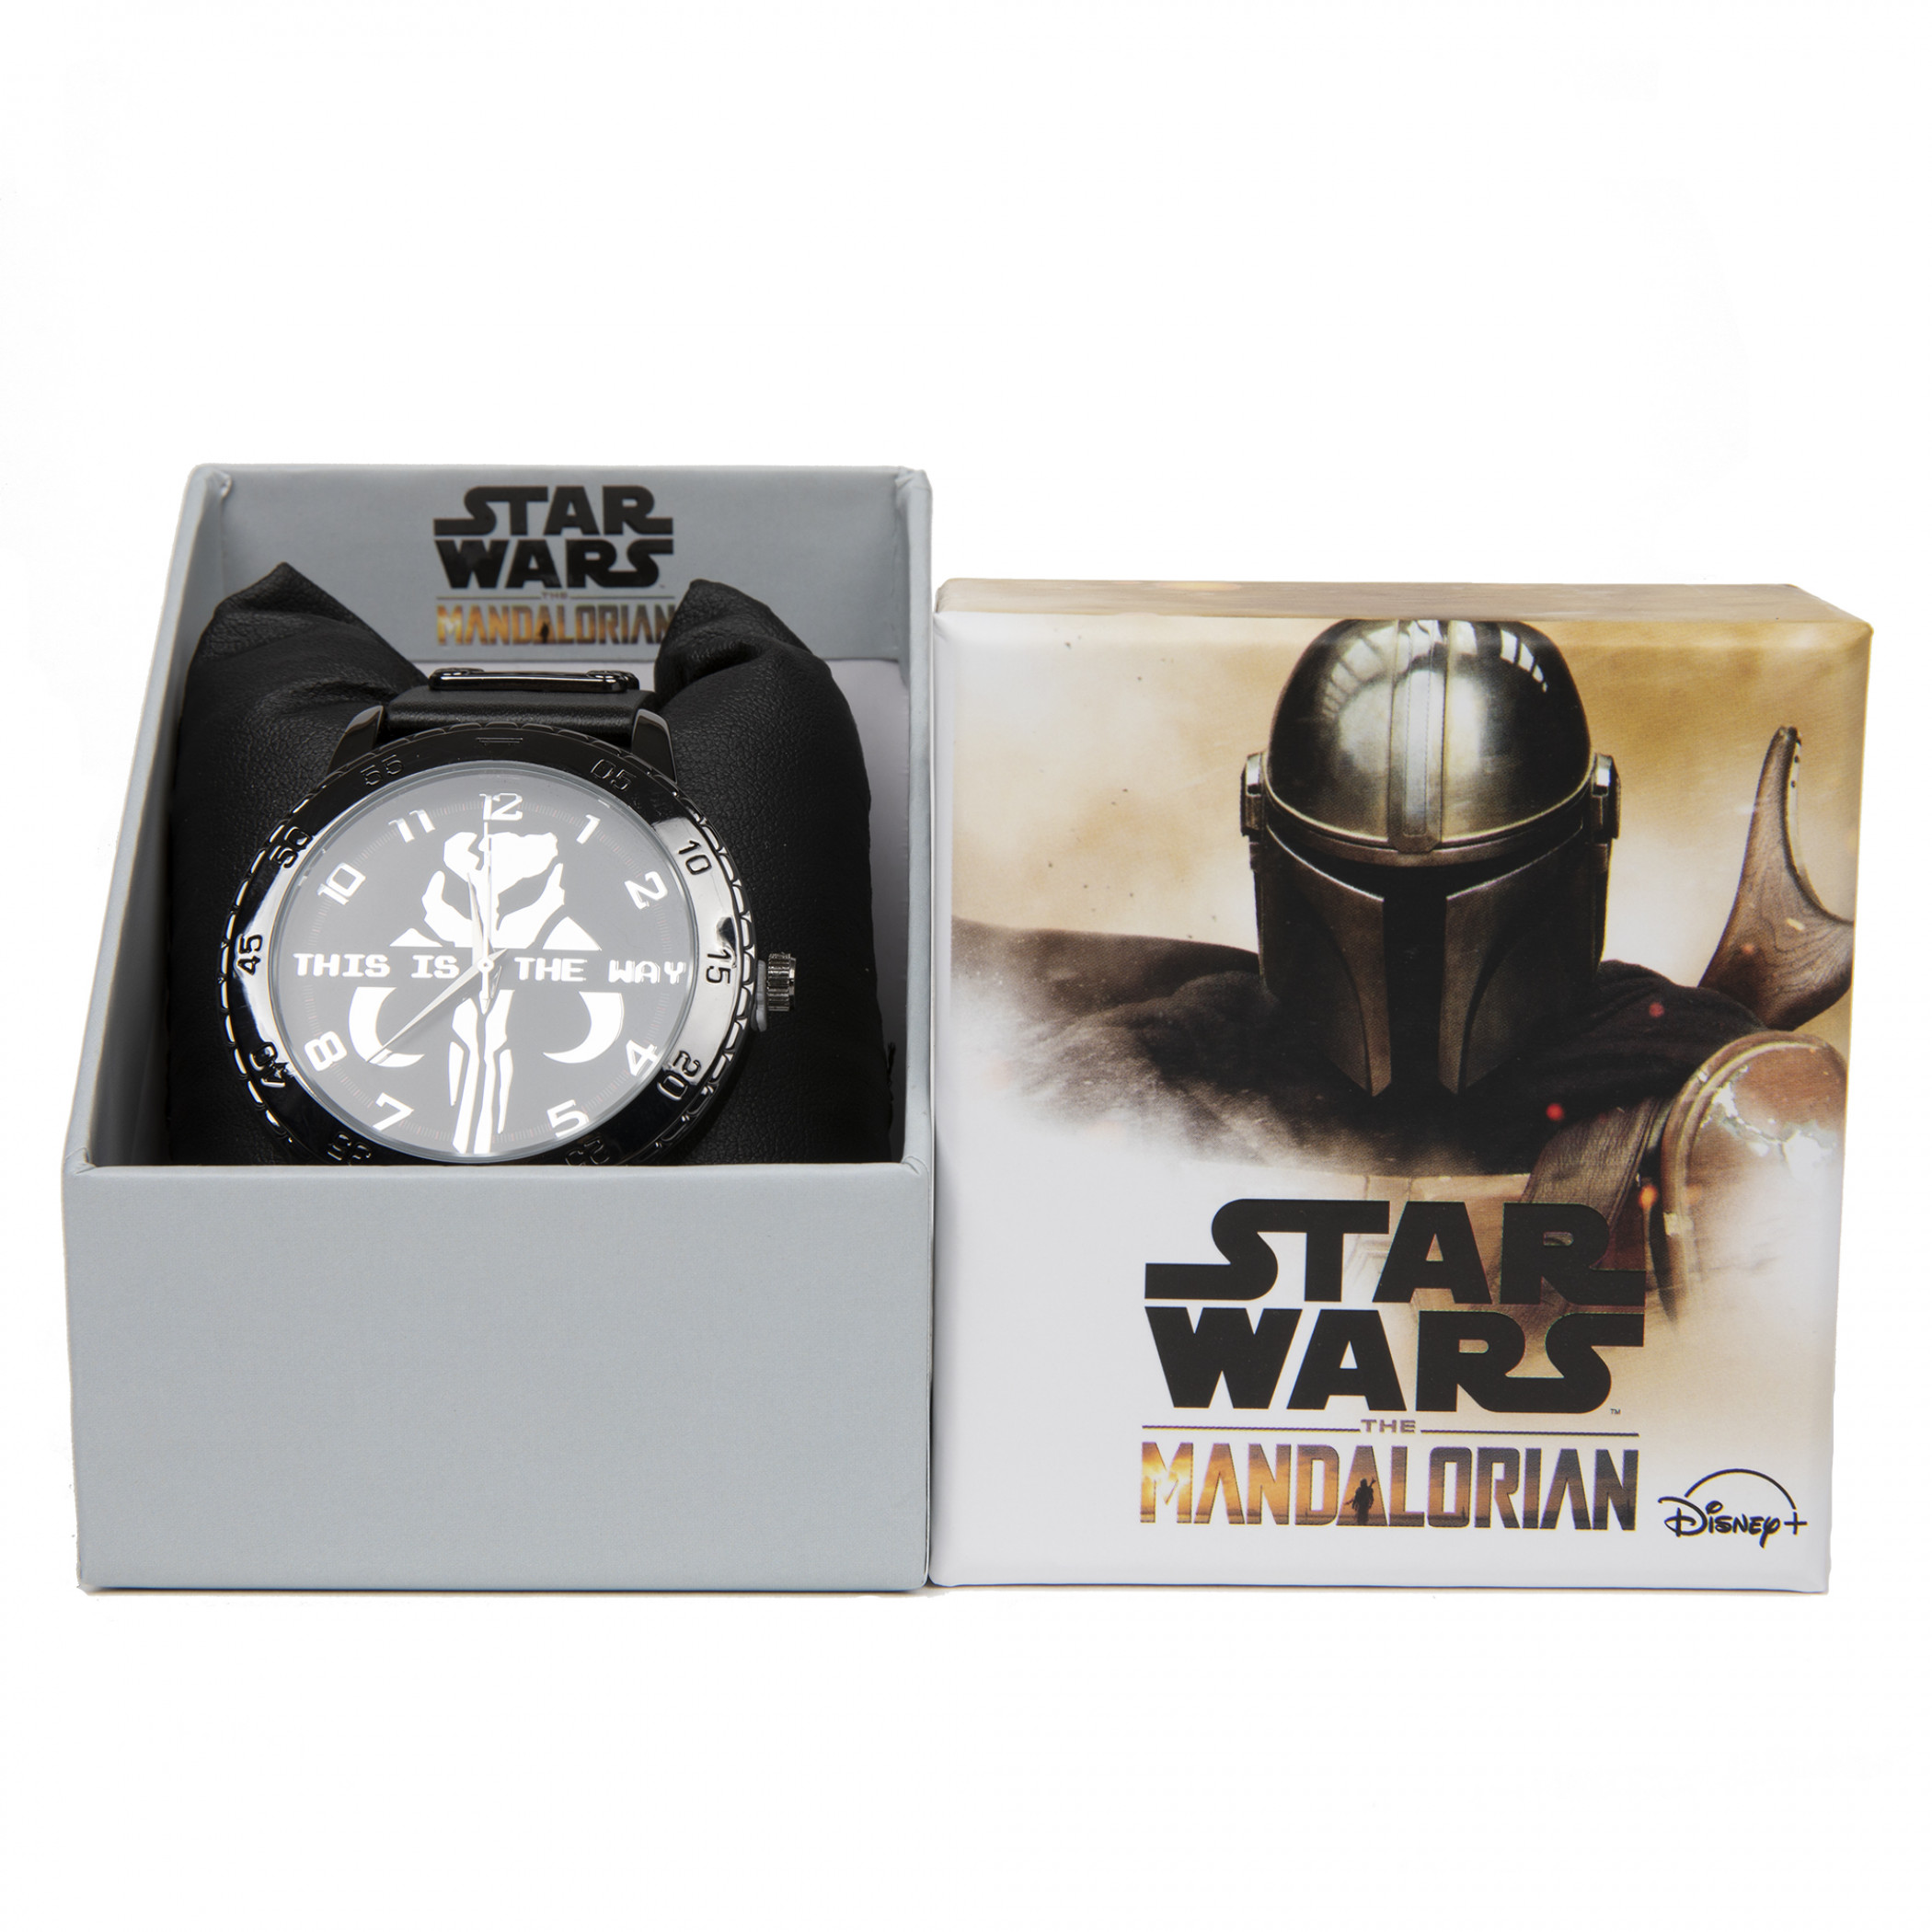 Star Wars The Mandalorian This is the Way Watch with Rubber Band